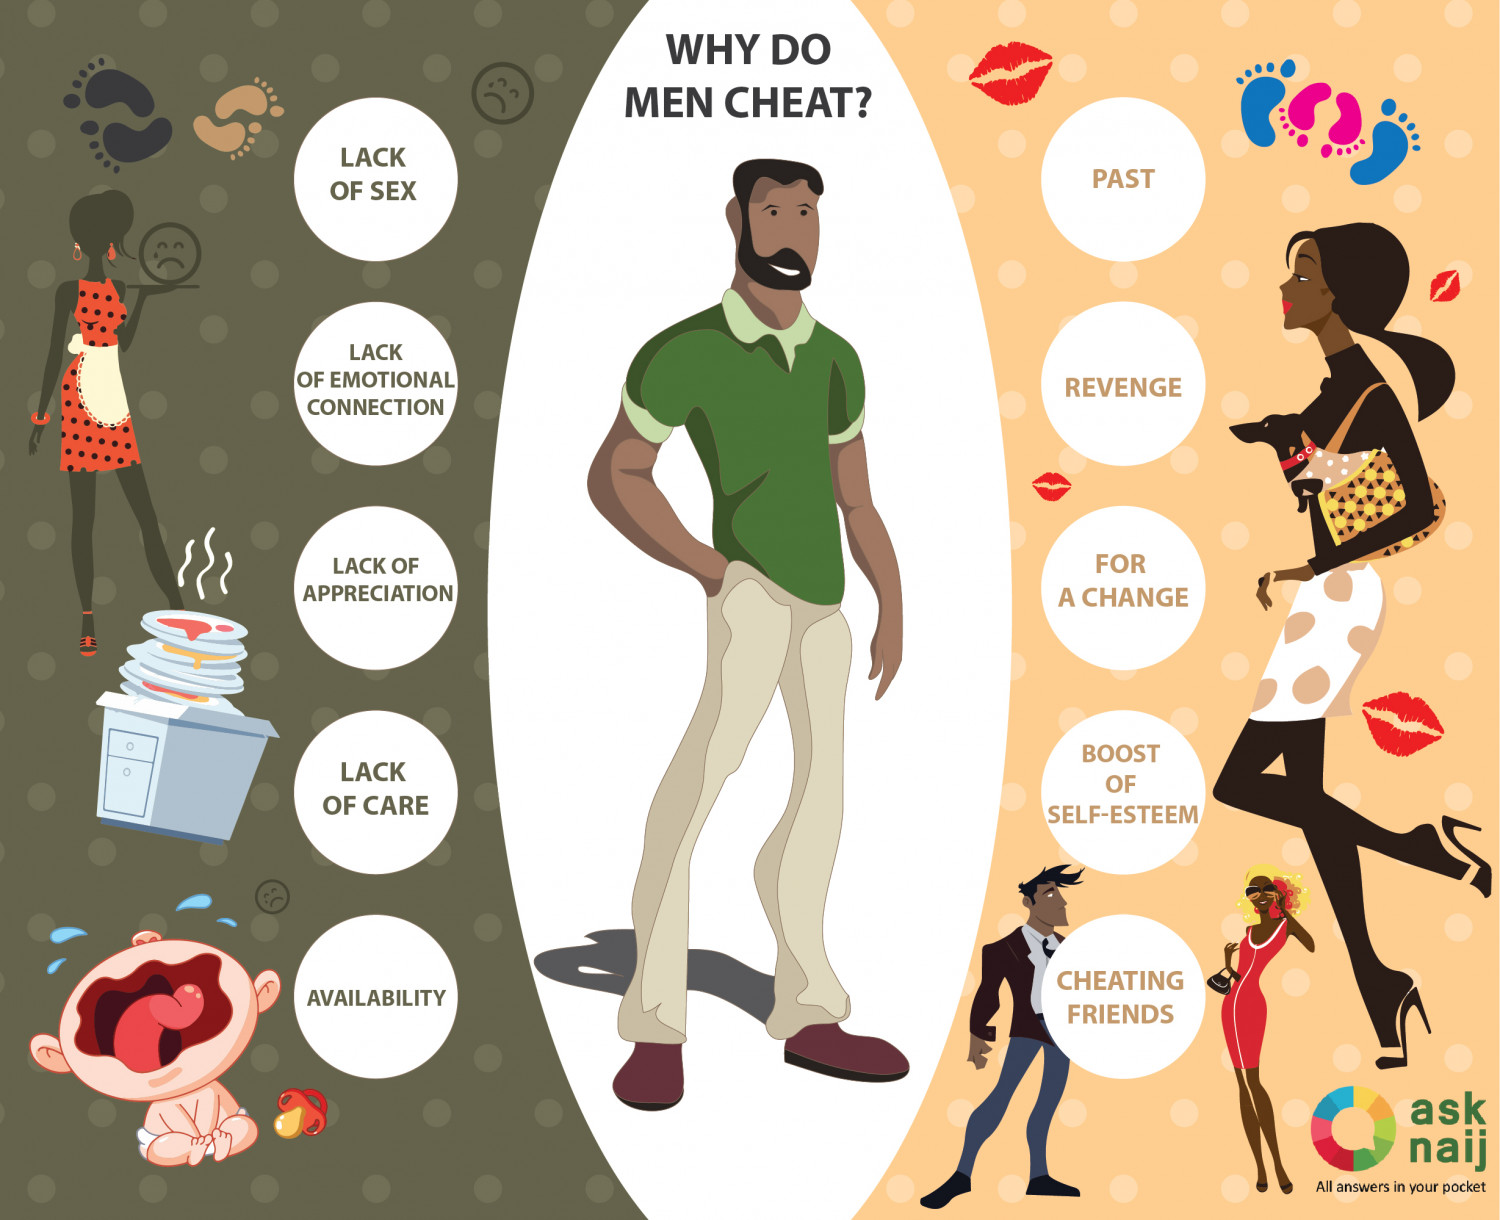 Why do men cheat - 10 Main reasons Infographic